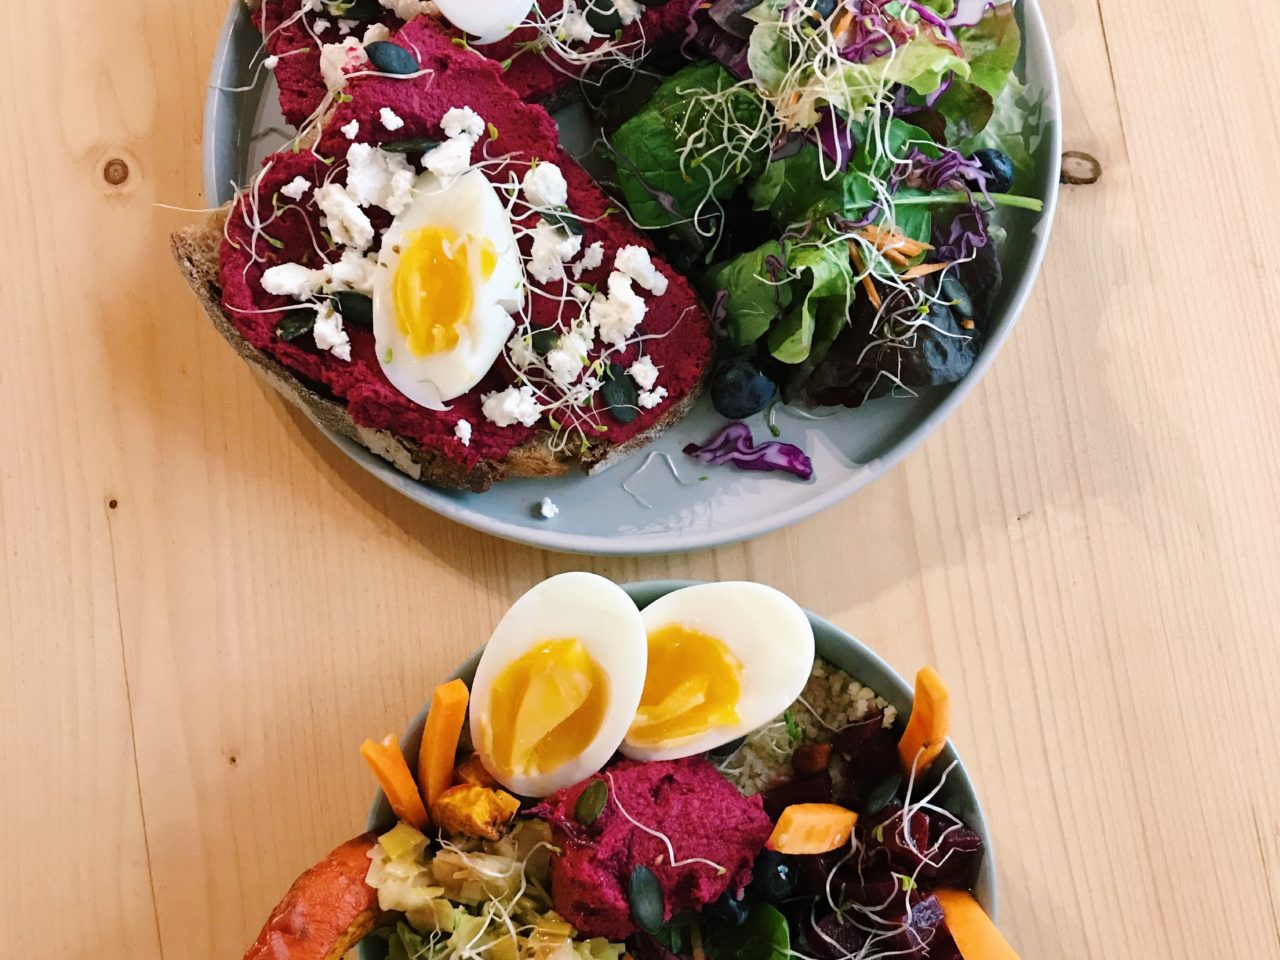 Veggie bowl and toast of the day